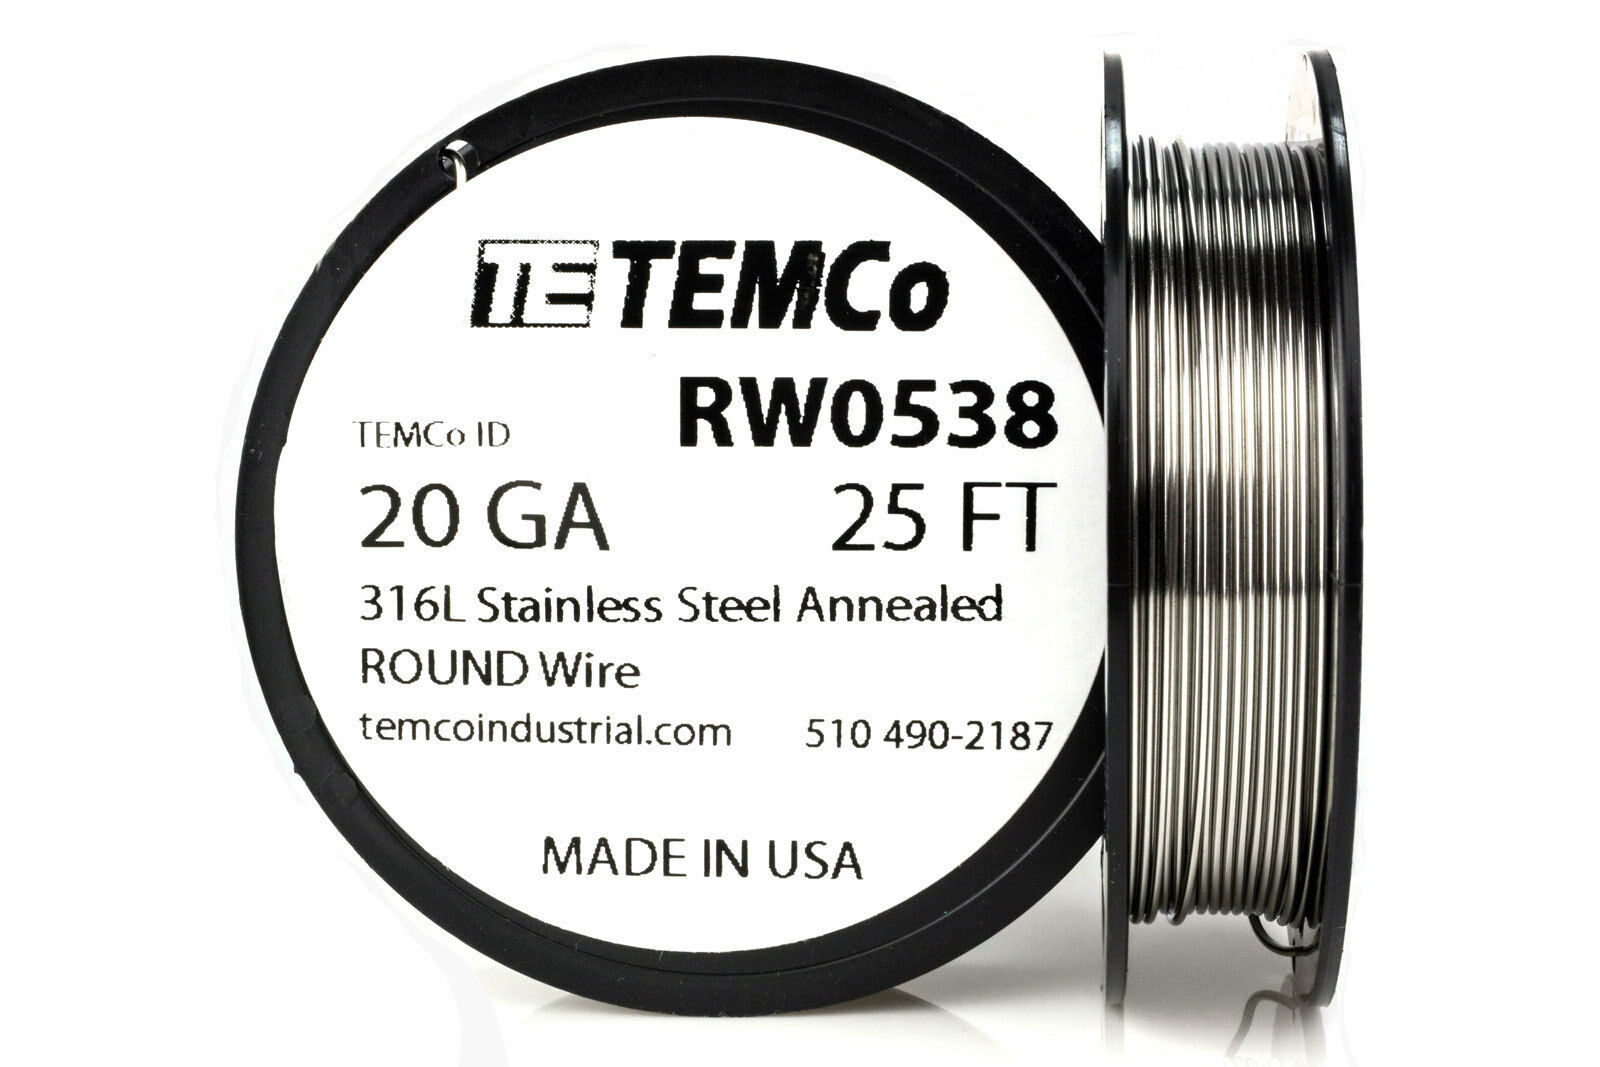 TEMCo Stainless Steel Wire SS 316L - 20 Gauge 25 FT Non-Resistance on austenitic stainless steel, tool steel, stainless steel wire management, carbon steel, stainless steel outlet, bessemer process, weathering steel, stainless steel piping, stainless steel ceiling, stainless steel connectors, stainless steel guy wire, stainless steel components, cold-formed steel, stainless steel braided lines, stainless steel fittings, stainless steel battery, alloy steel, stainless steel plug cap, stainless steel panels, stainless steel harness, stainless steel metal roof, stainless steel brakes, stainless steel plumbing, stainless steel adapters, martensitic stainless steel, stainless steel soap, maraging steel, polyvinyl chloride, stainless steel resistors, stainless steel cable hangers, stainless steel paint job, surgical stainless steel,